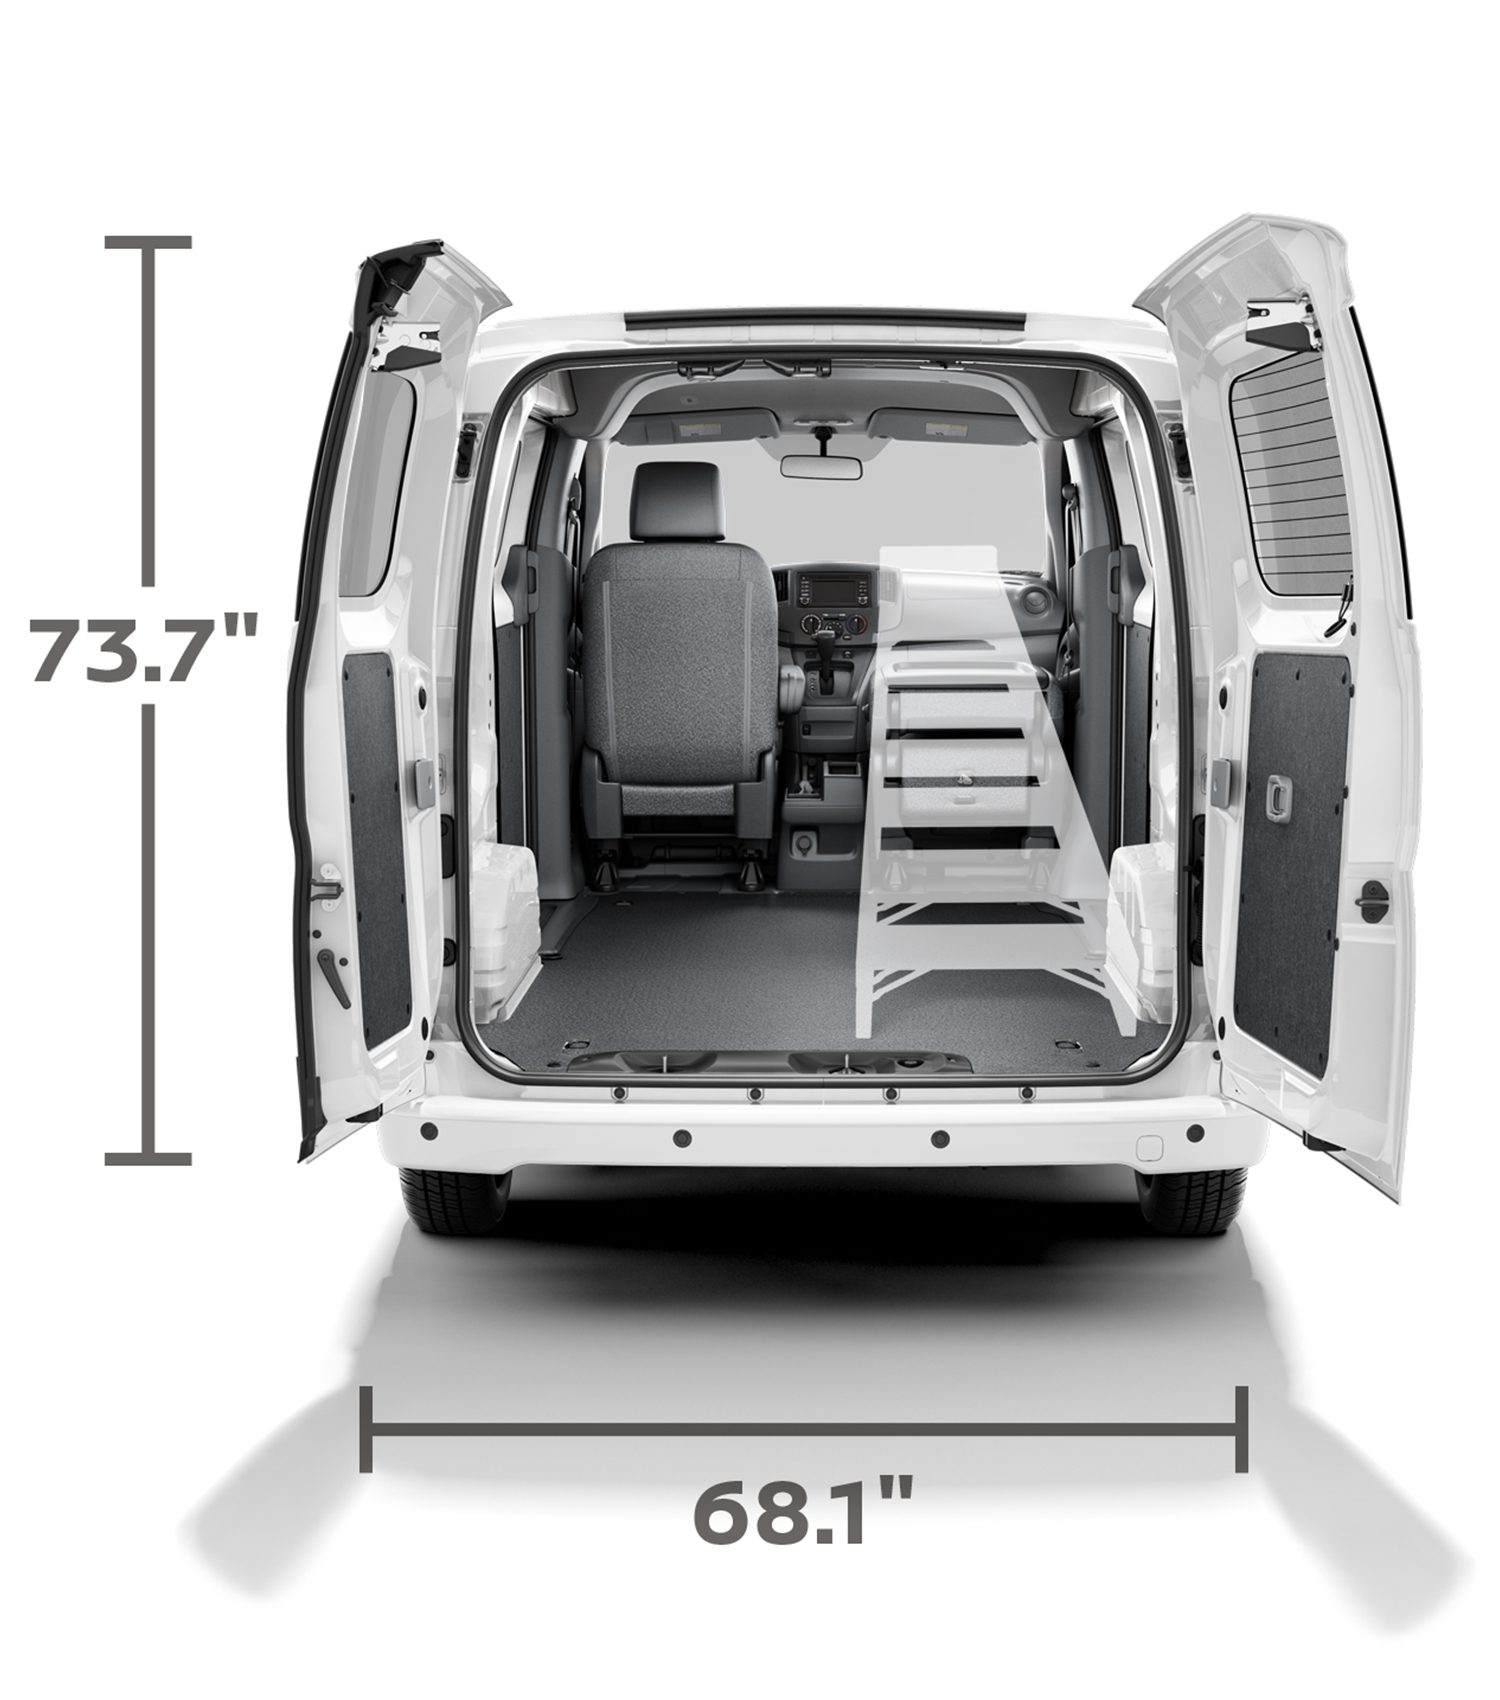 nissan nv200 interior dimensions images galleries with a bite. Black Bedroom Furniture Sets. Home Design Ideas